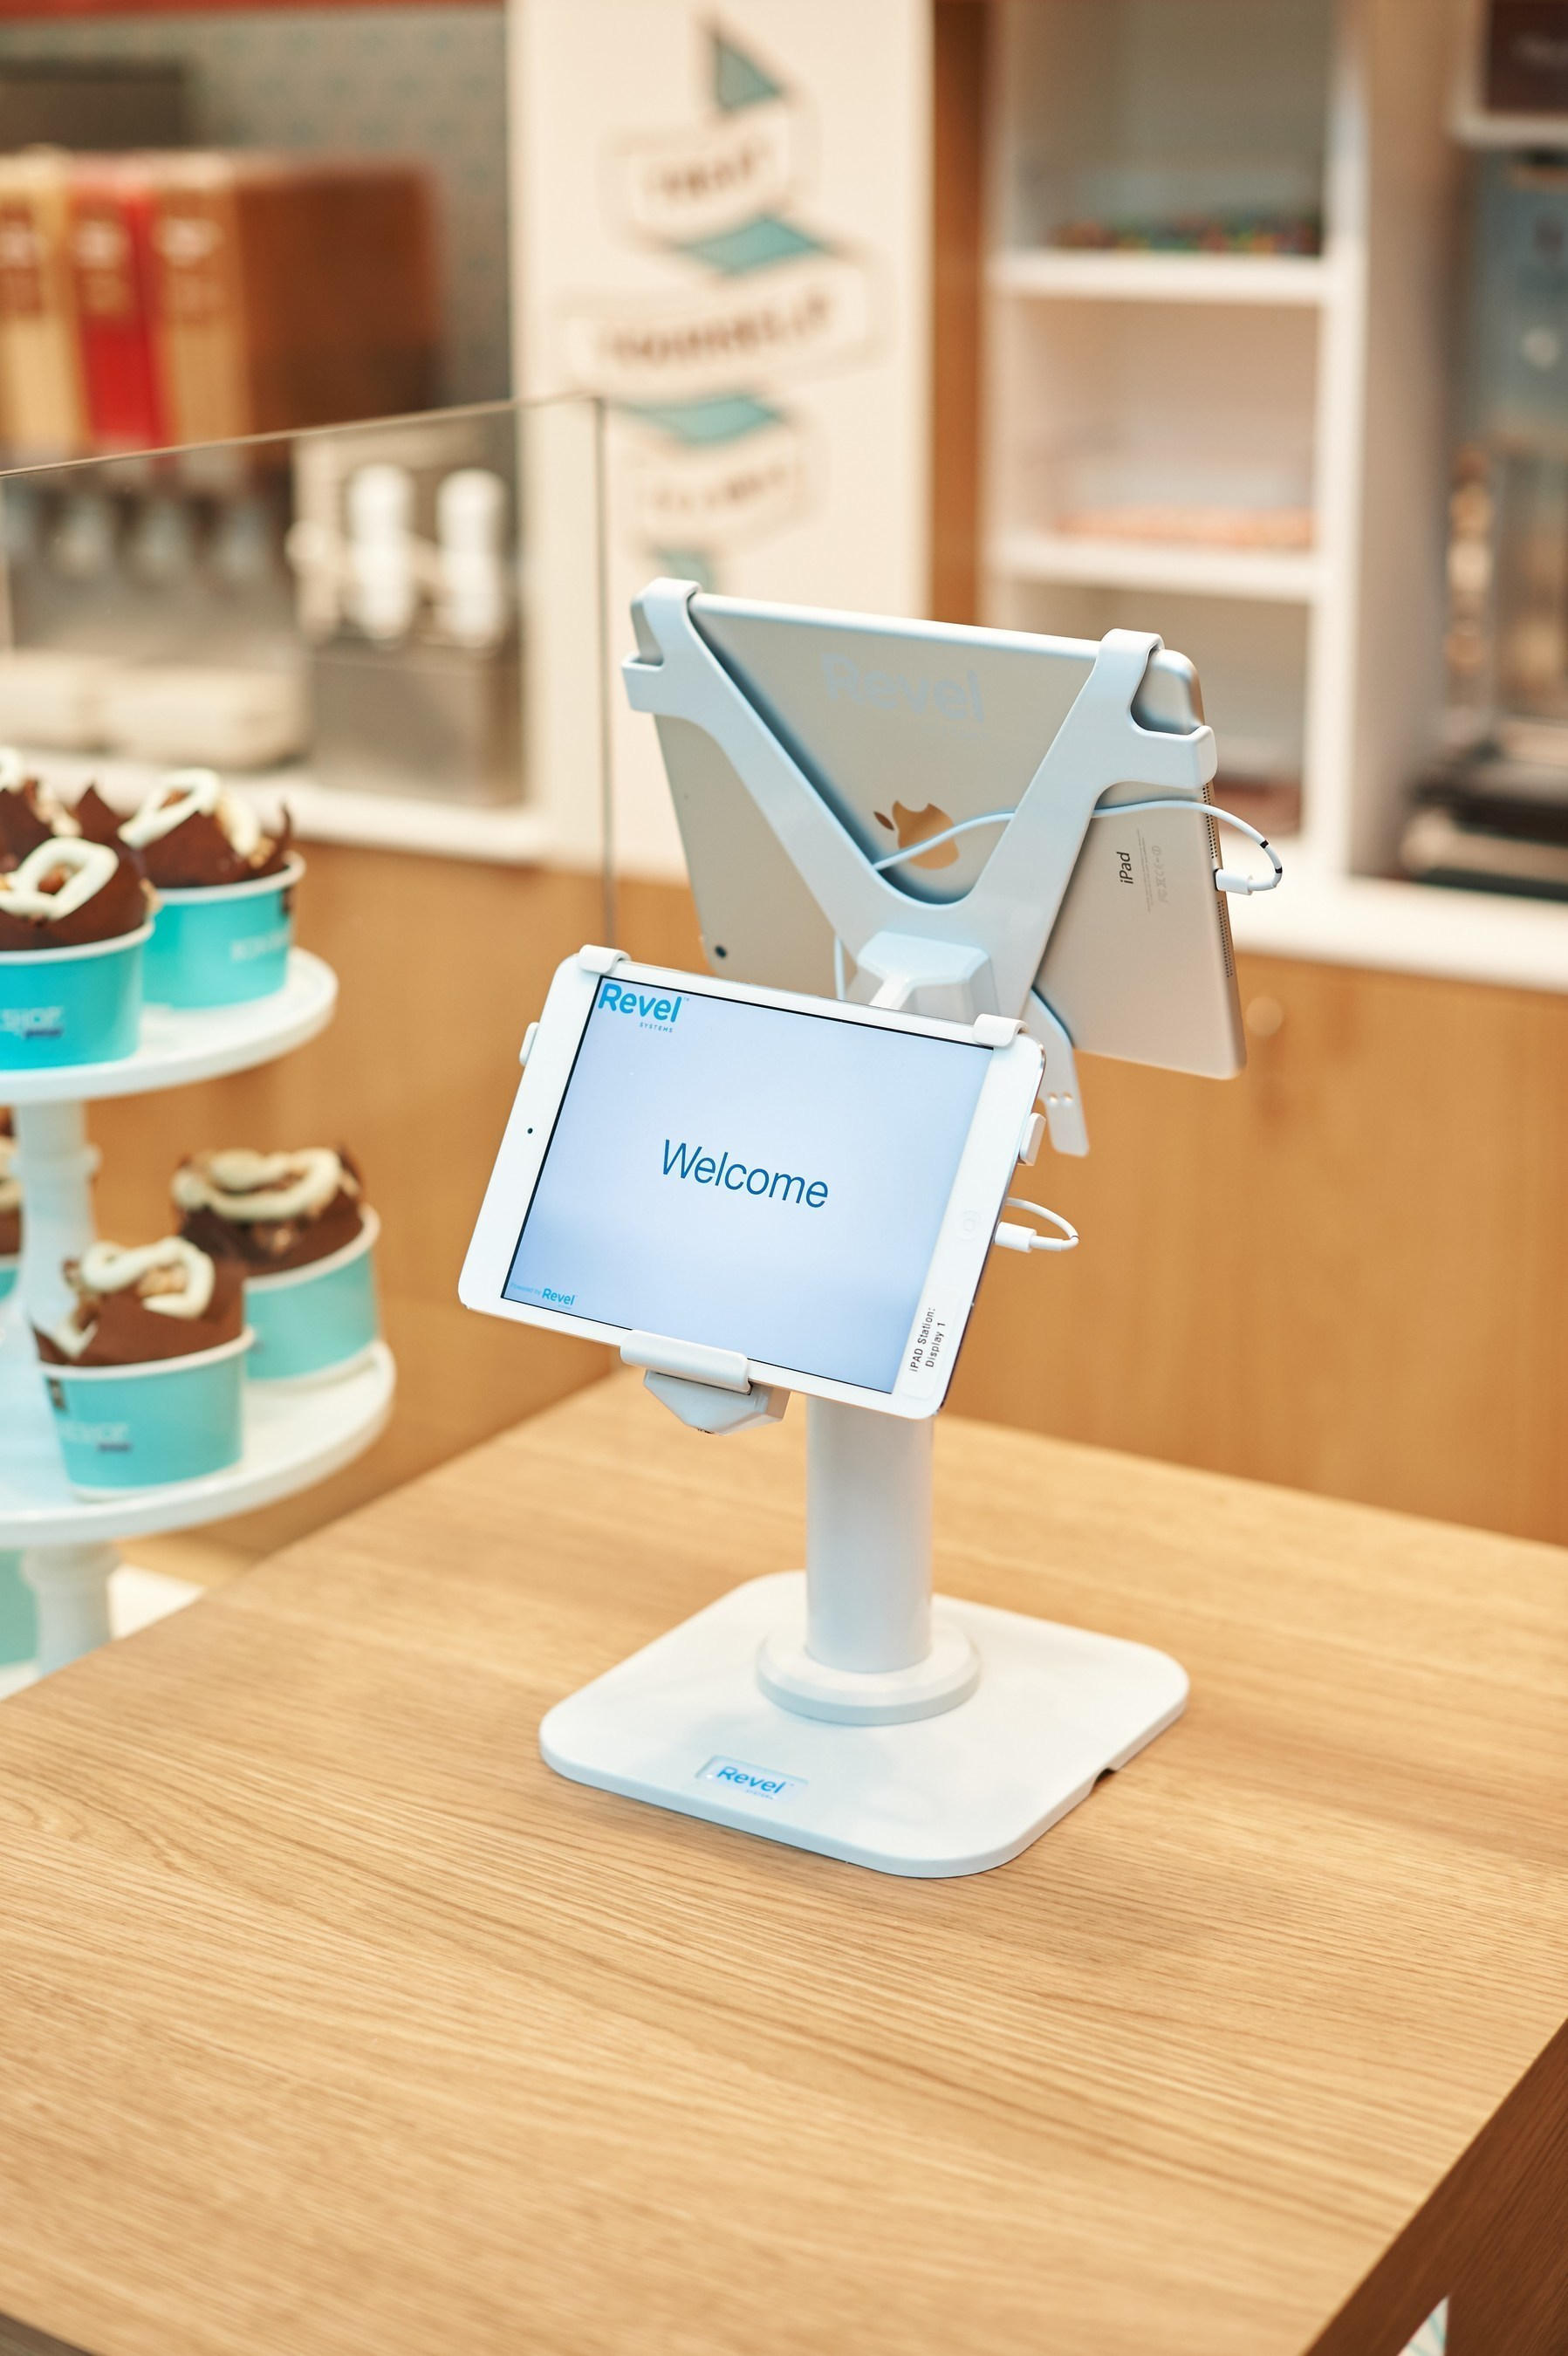 Cinnabon' Chooses Revel Systems, the Leading Point of Sale System Made for iPad, for Roll-out to Bakeries Across the Country